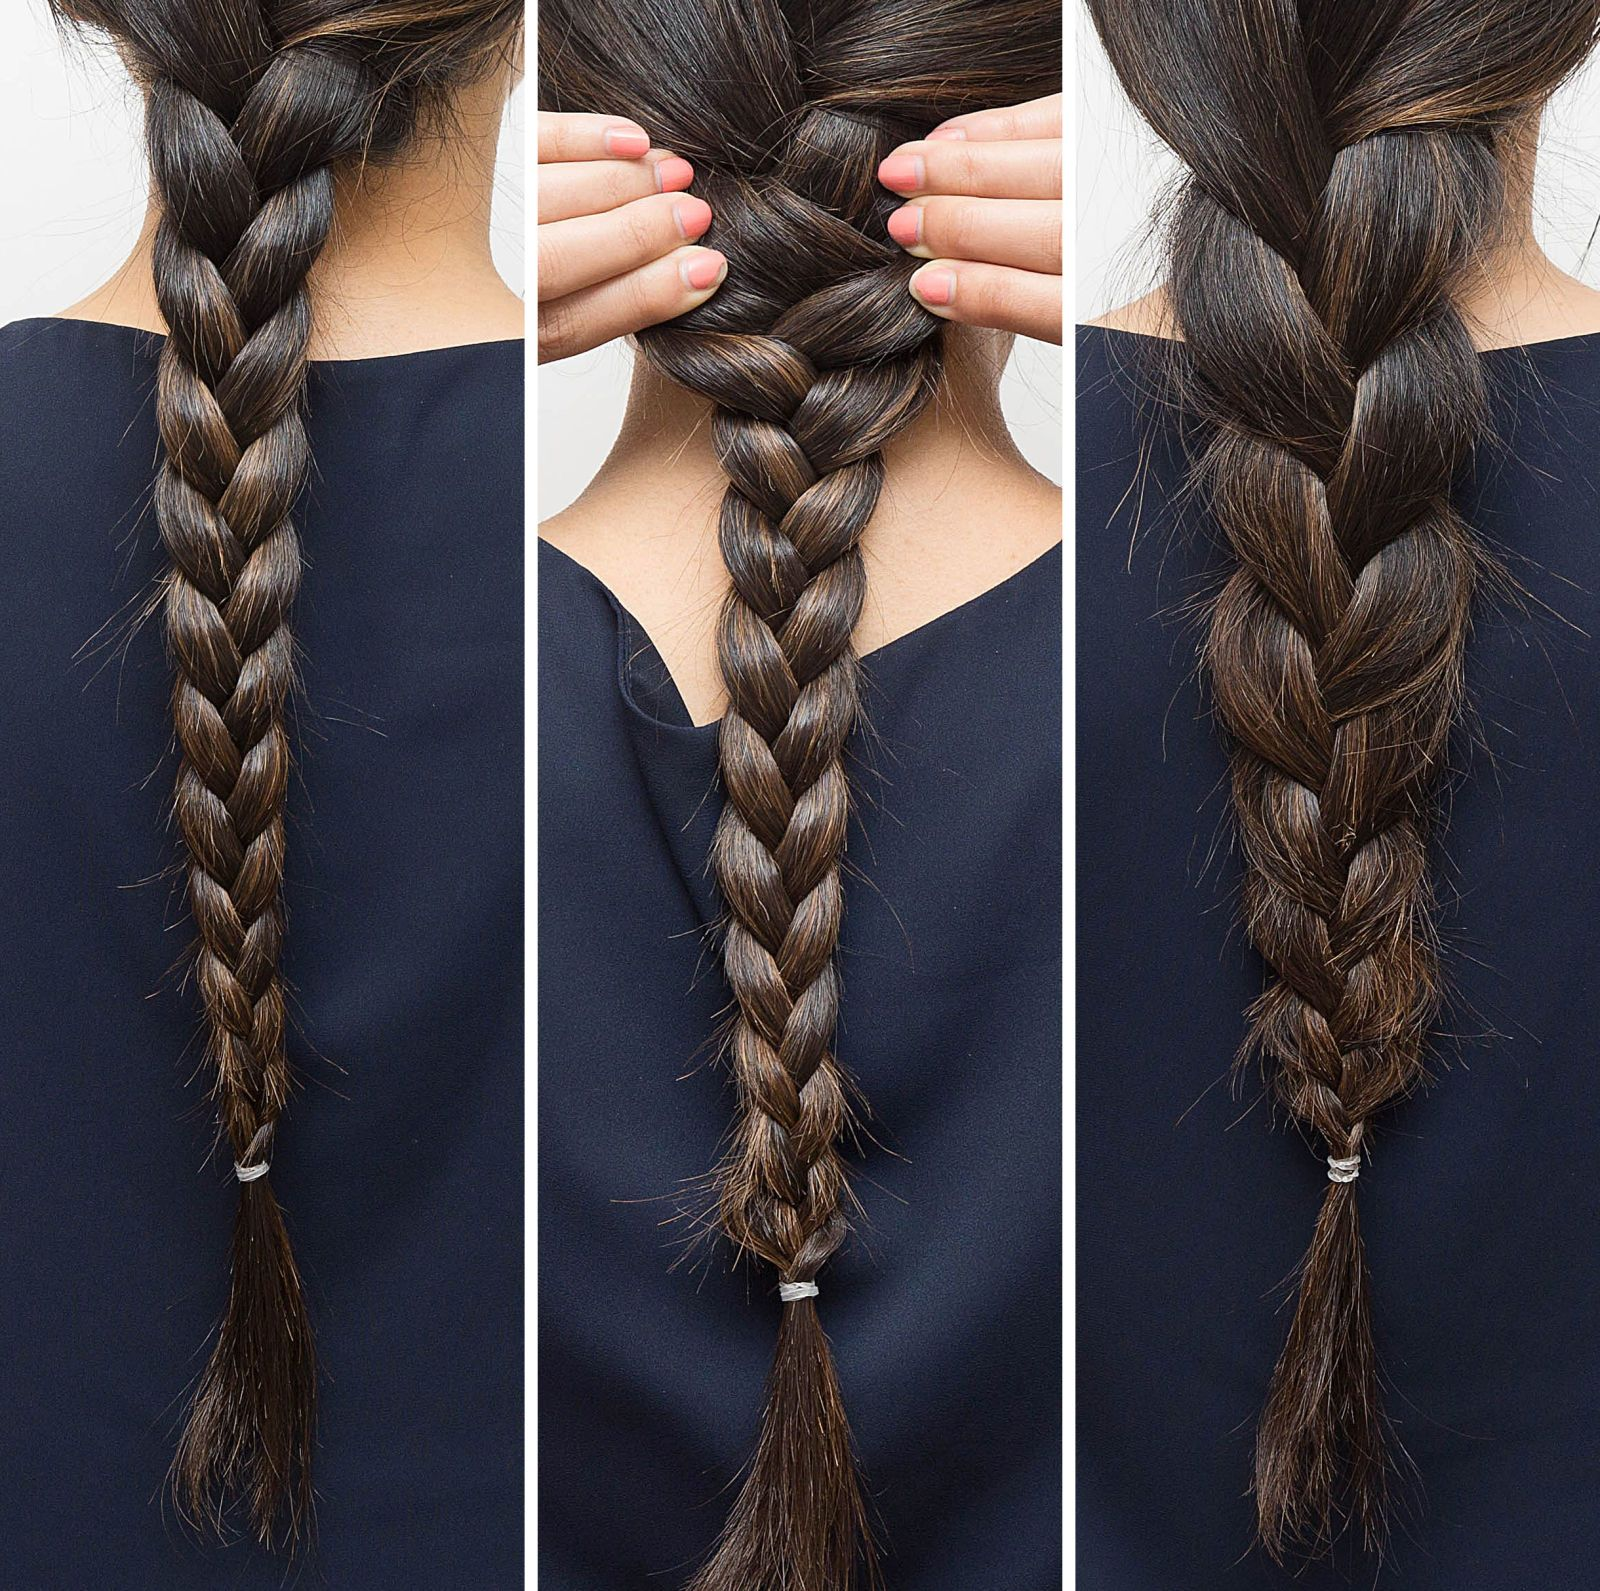 17 Tricks That Ll Make Your Hair Look So Much Fuller And Thicker